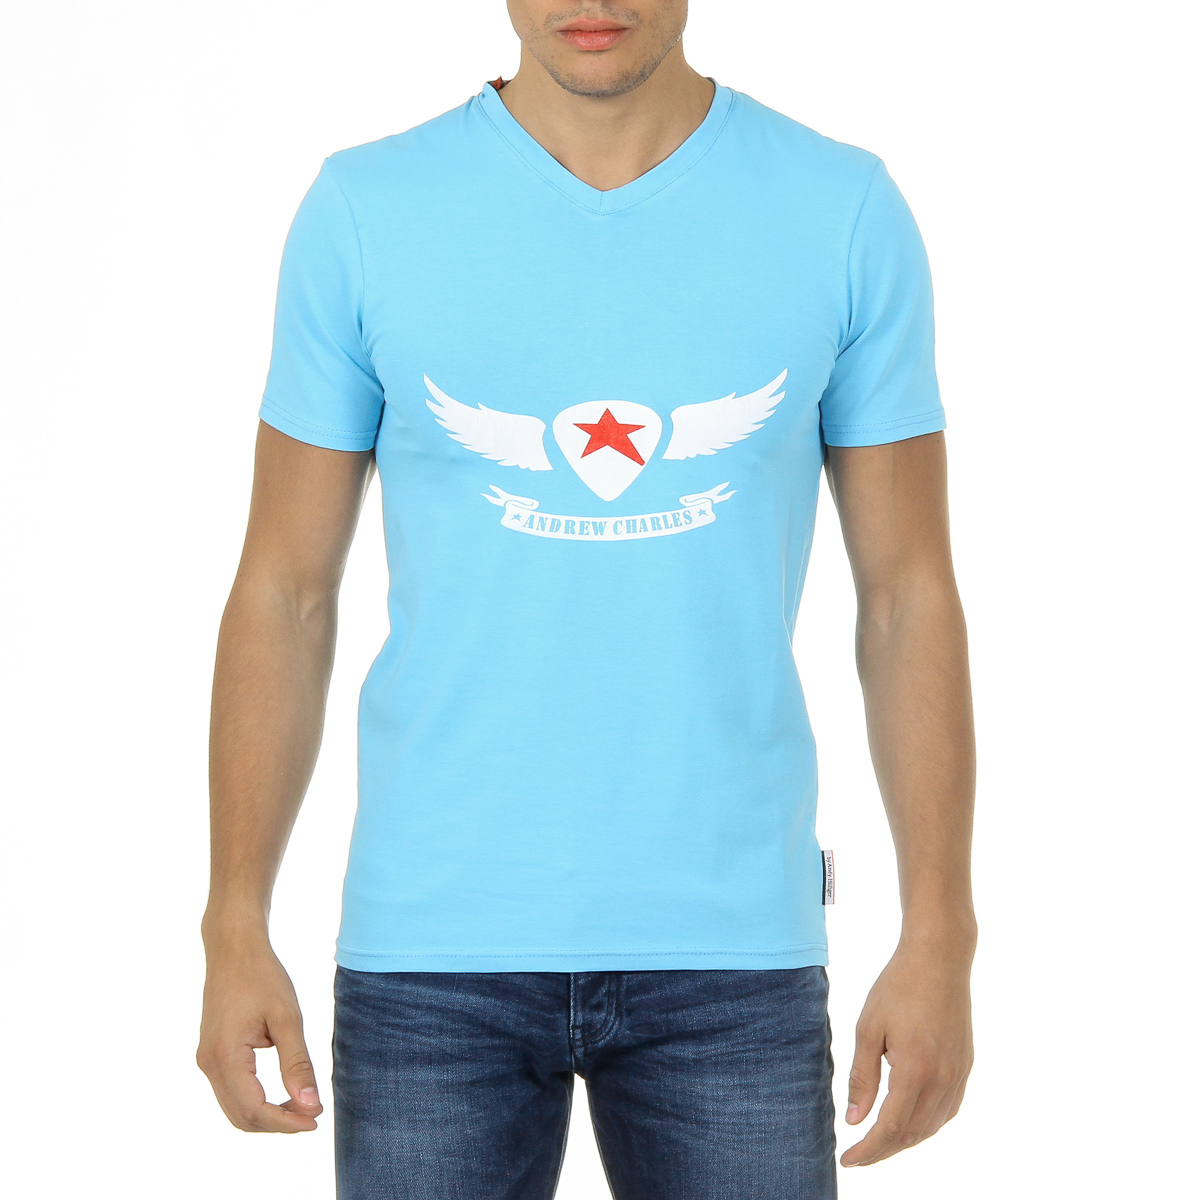 Primary image for Andrew Charles Mens T-Shirt Short Sleeves V-Neck Light Blue KENAN